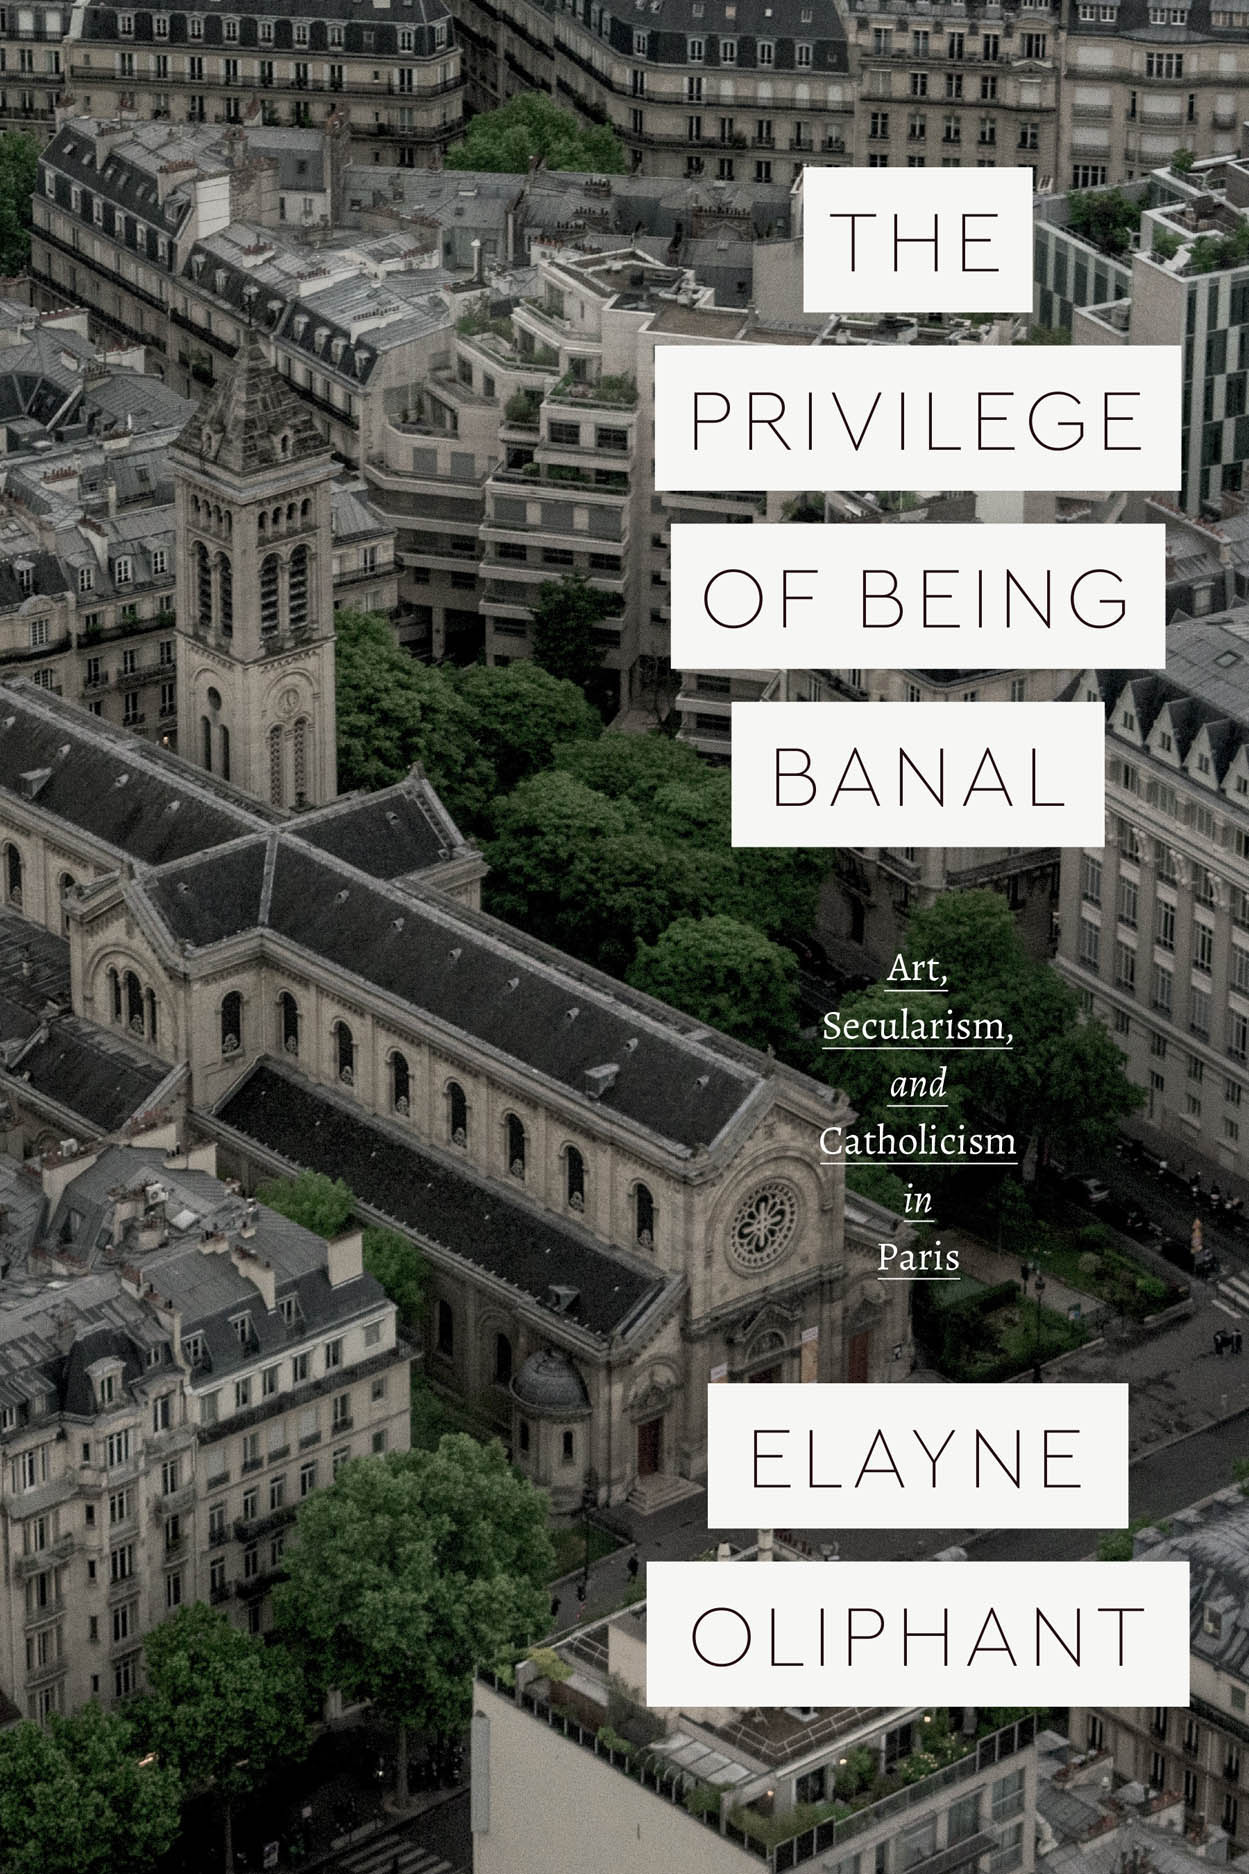 The Privilege of Being Banal: Art, Secularism, and Catholicism in Paris